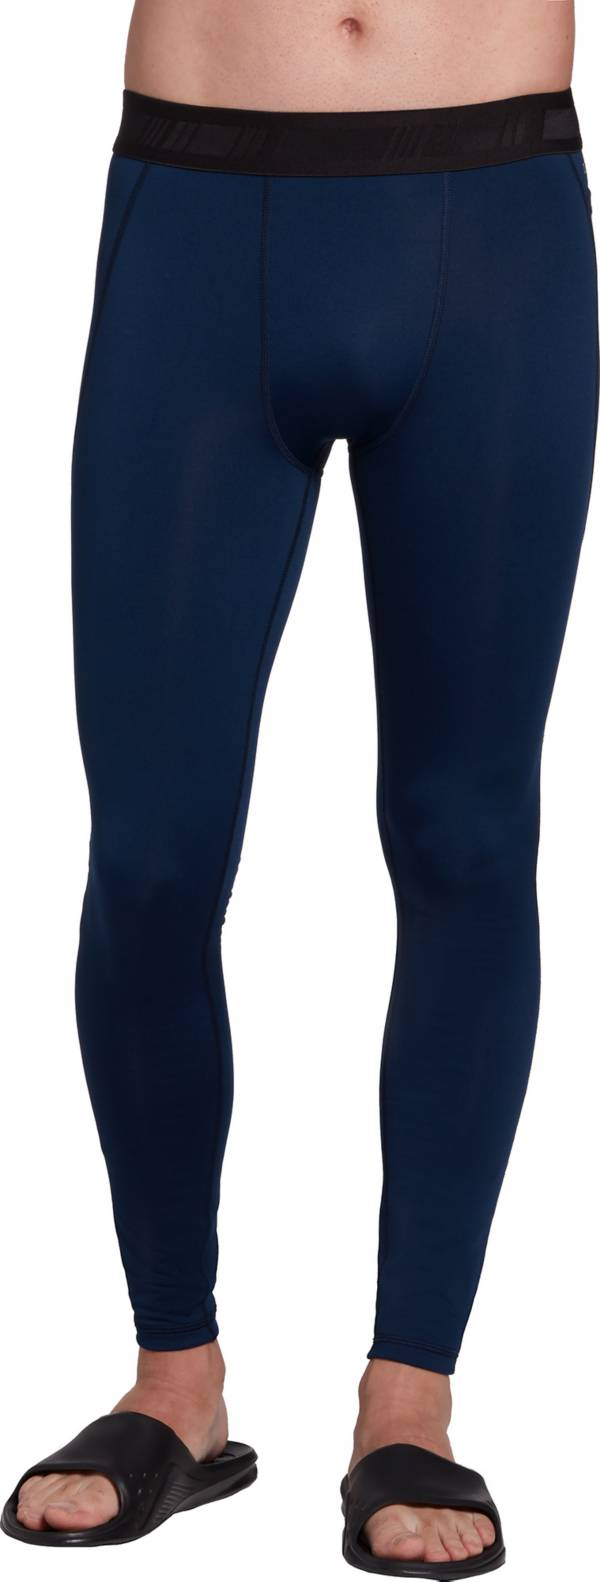 DSG Men's Cold Weather Compression Tights (Regular and Big & Tall) product image